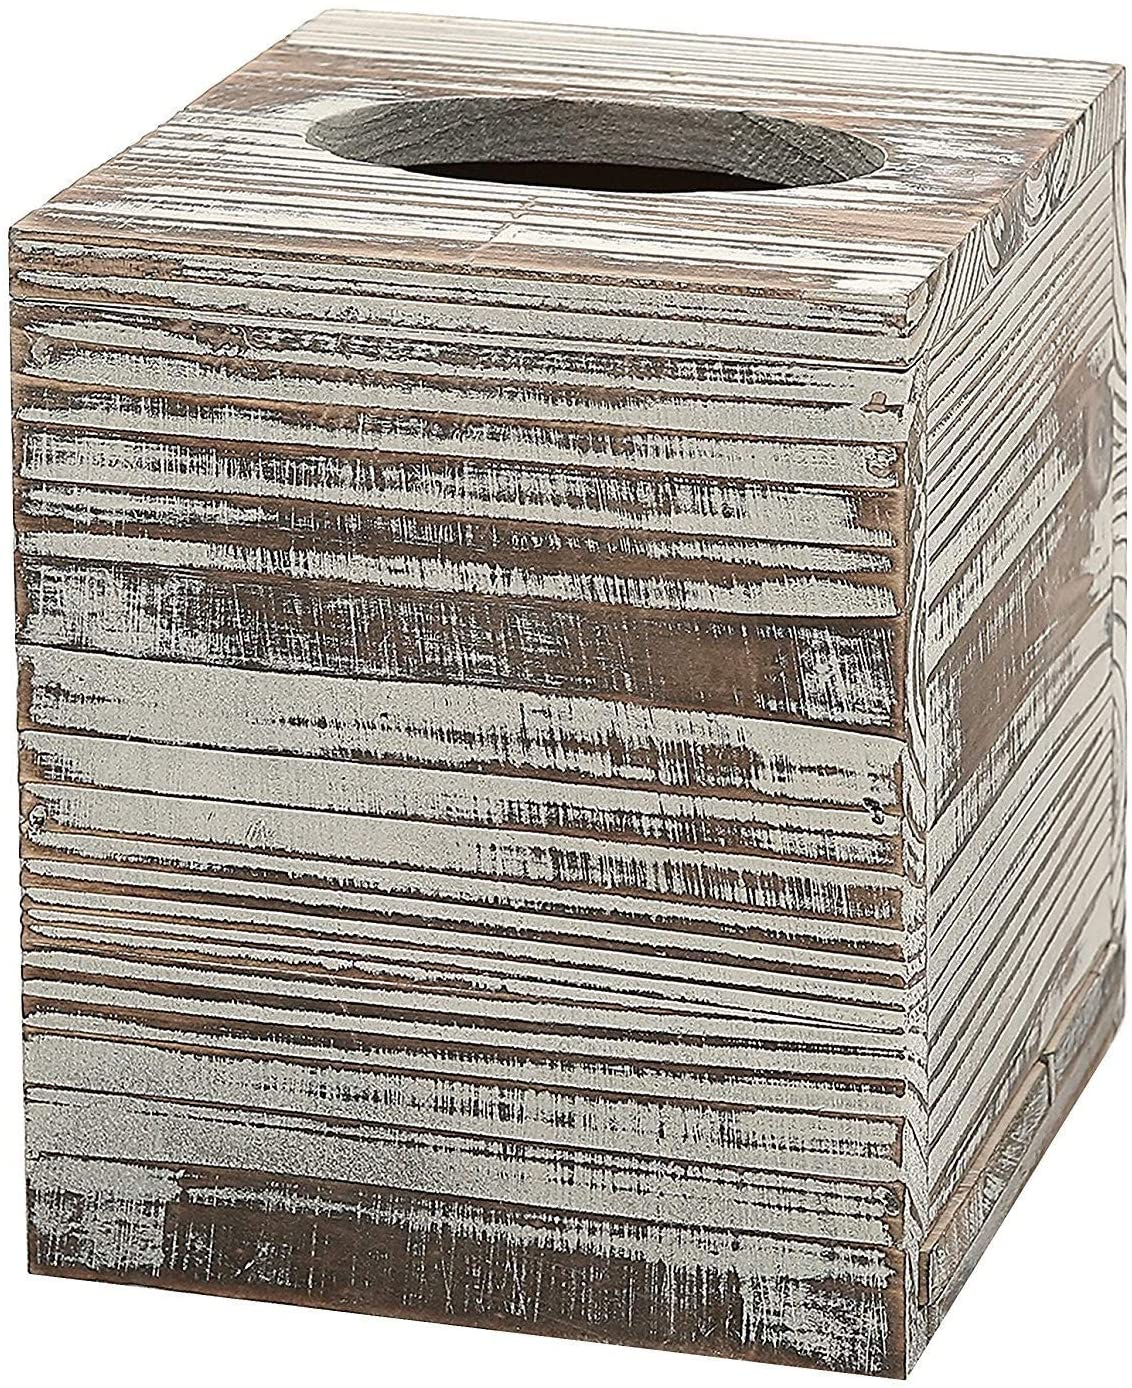 ZHU YU CHUN Rustic Torched Barnwood Brown Square Tissue Box Cover with Slide-Out Bottom Panel (Gray)